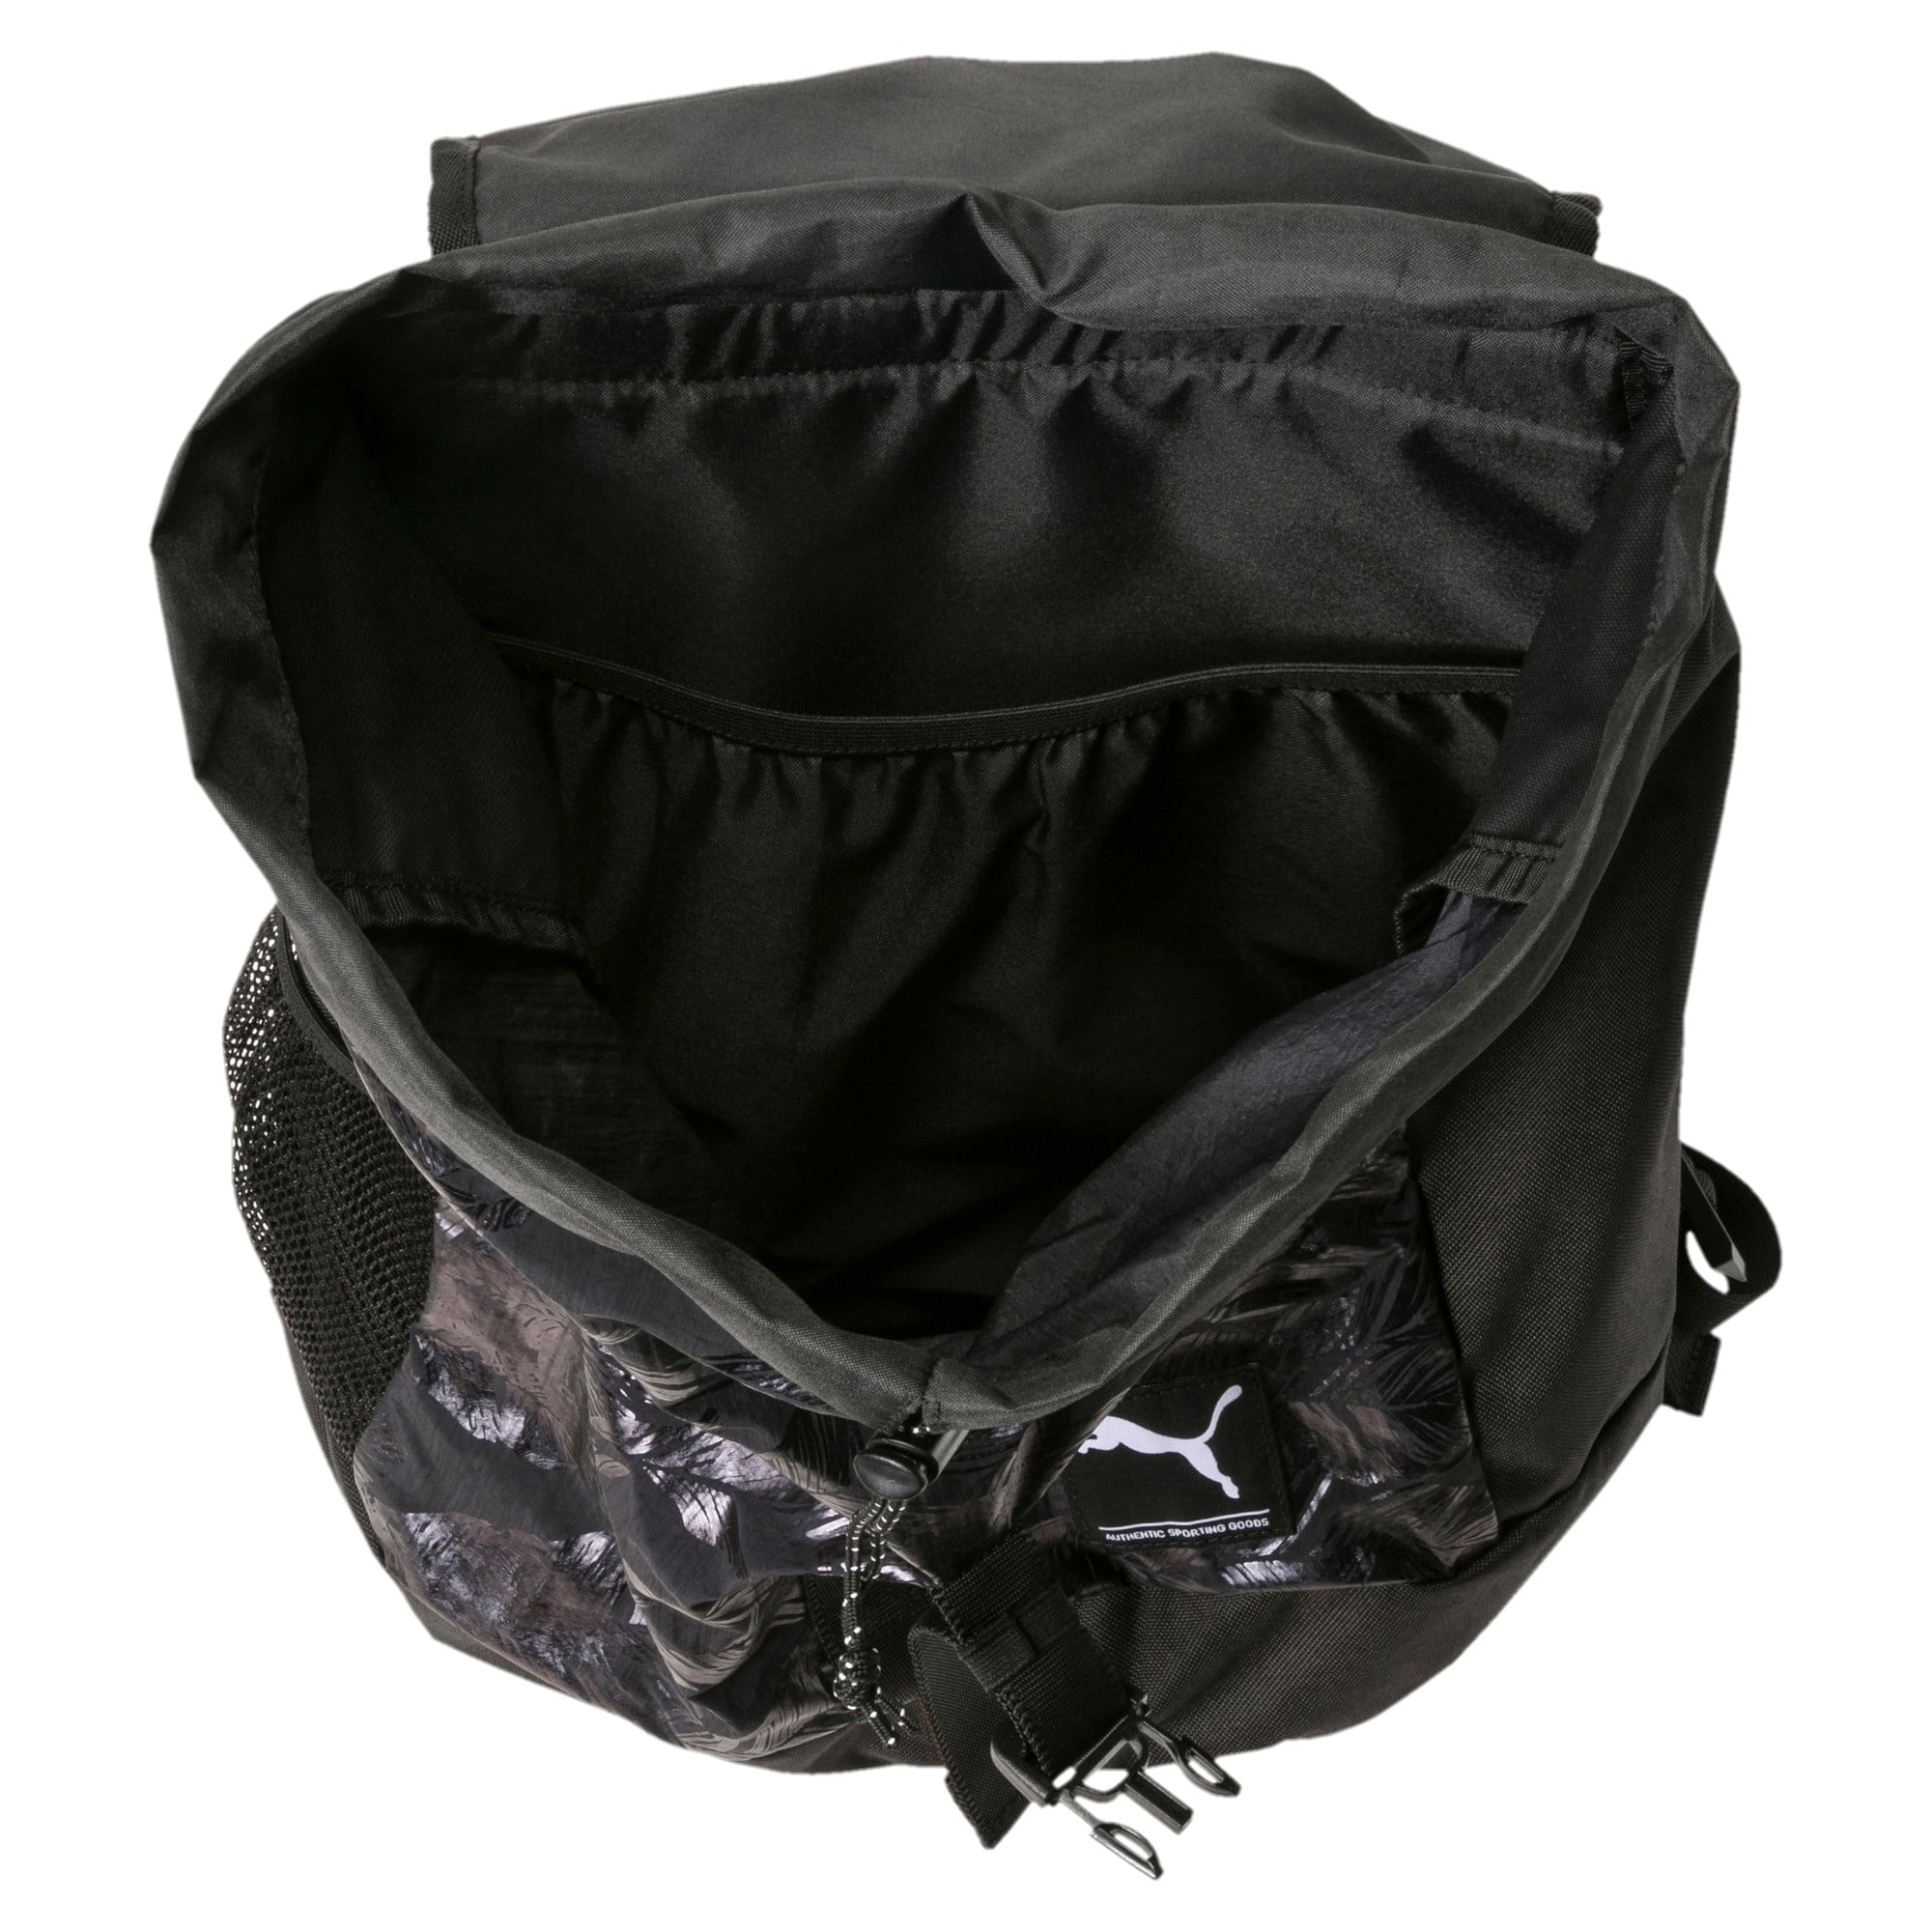 Thumbnail 3 of Women's Academy Backpack, Puma Black-SWAN, medium-IND